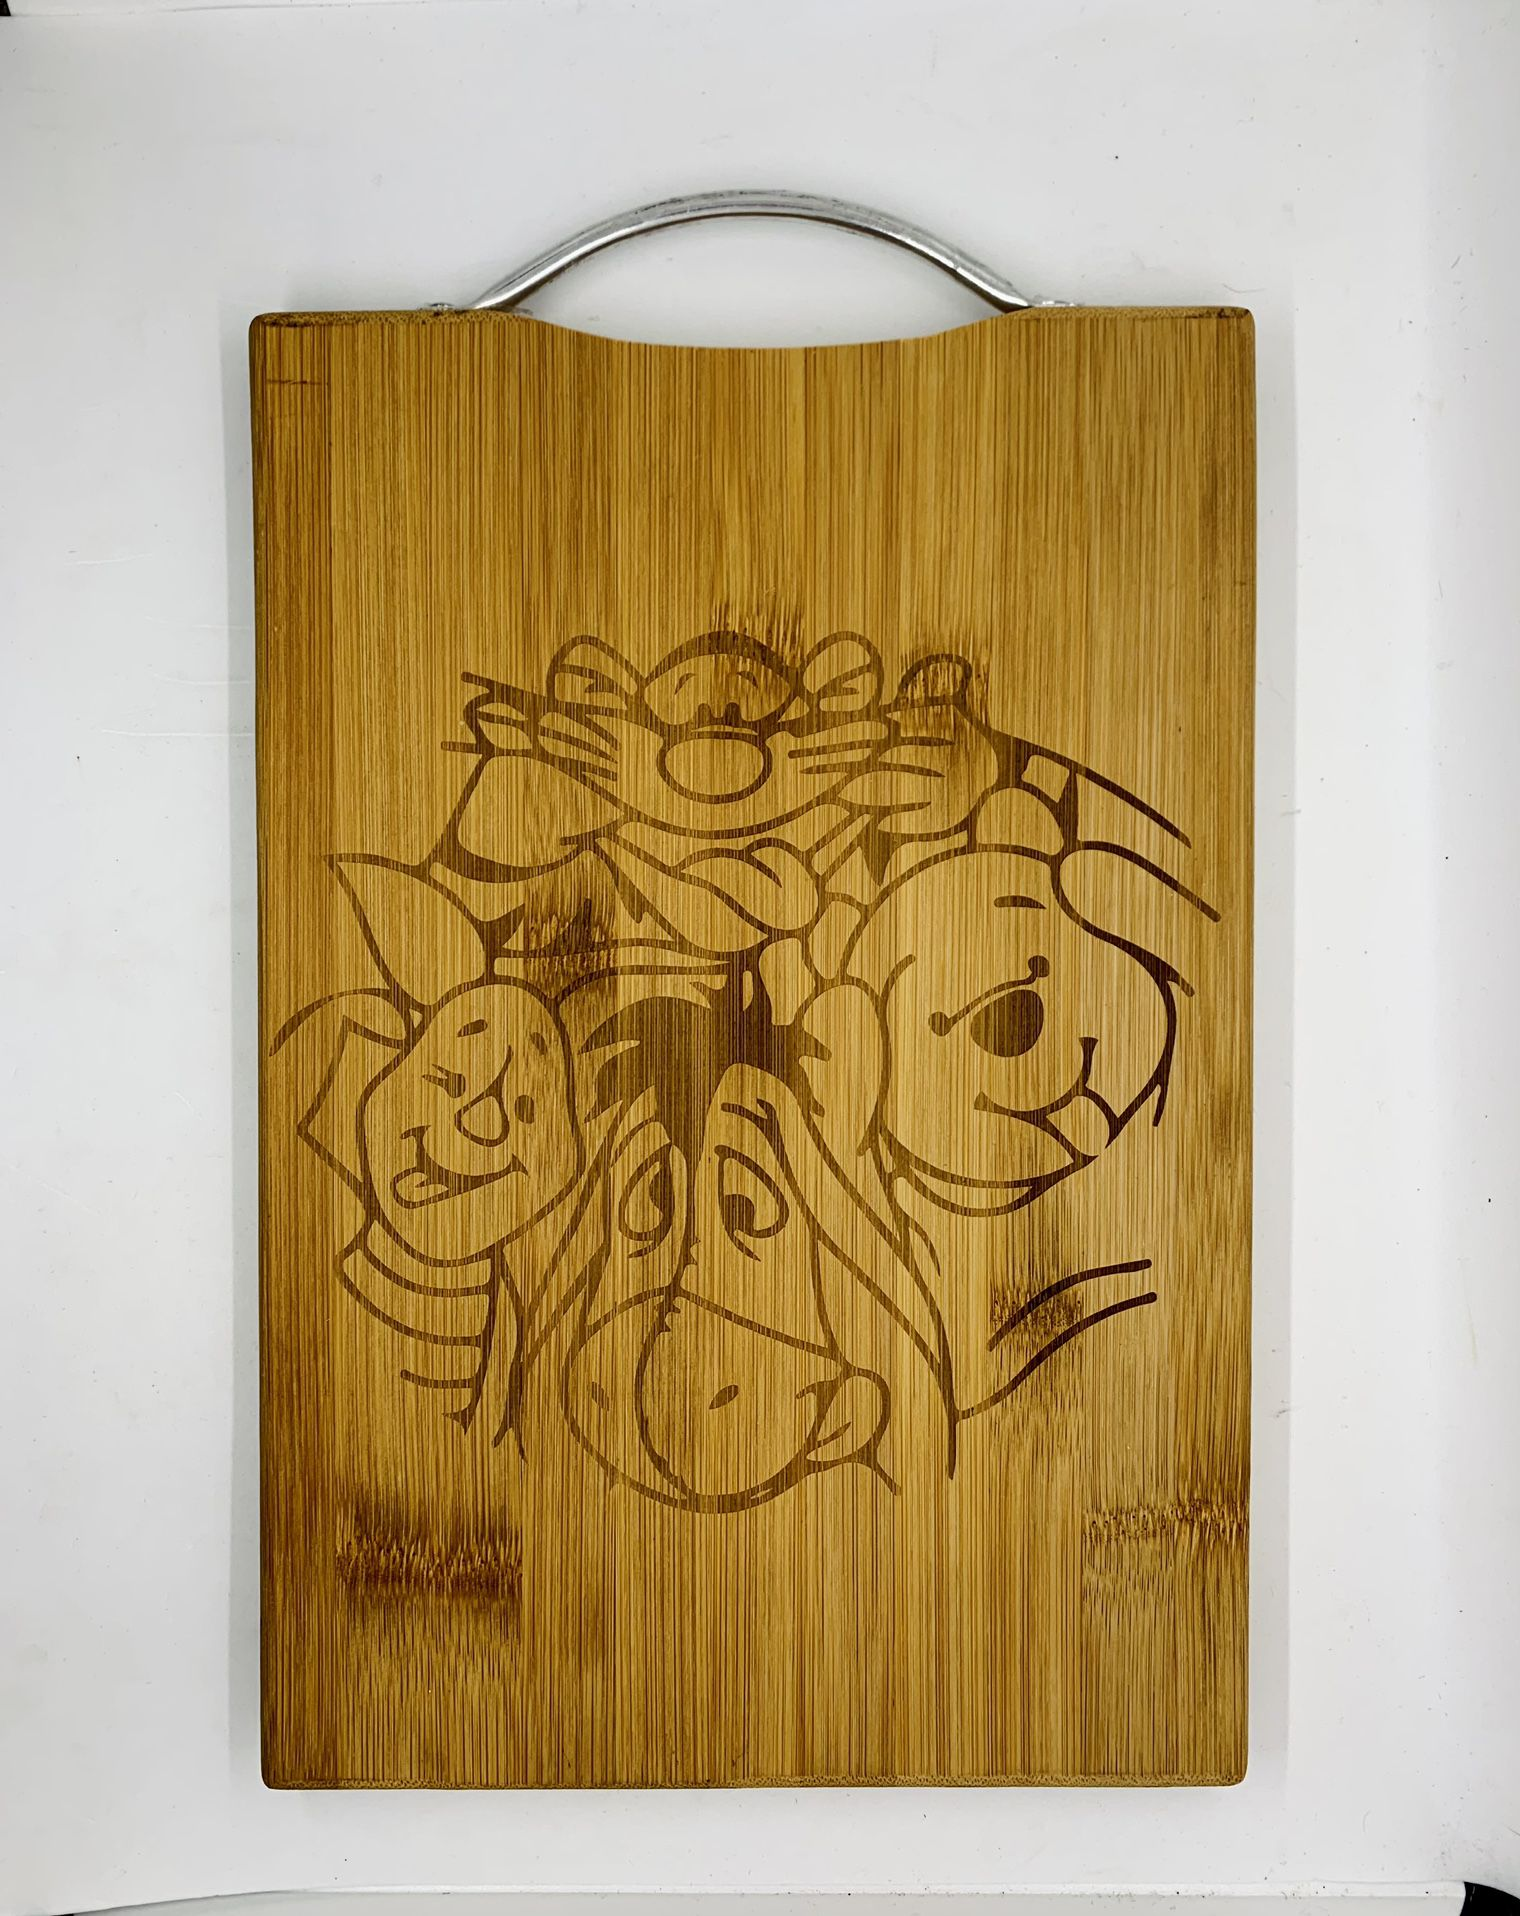 Winnie the pooh laser engraved bamboo high quality cuttingboard pop gift